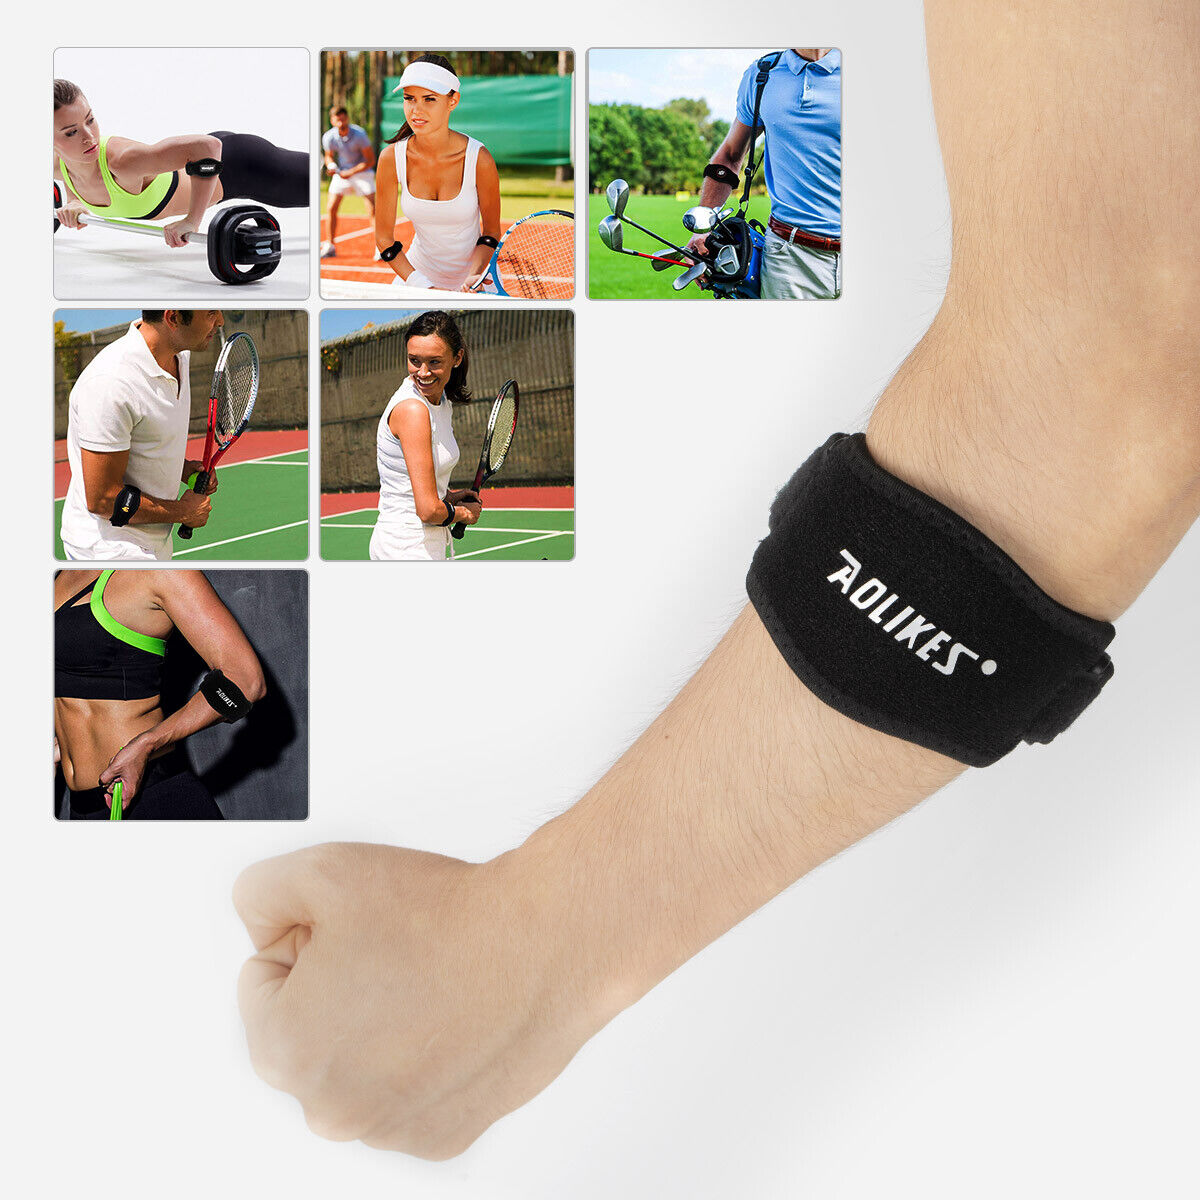 Tennis Elbow Brace 2 Pack Best Elbow Support Strap For Tennis Golfers Elbow - $7.99